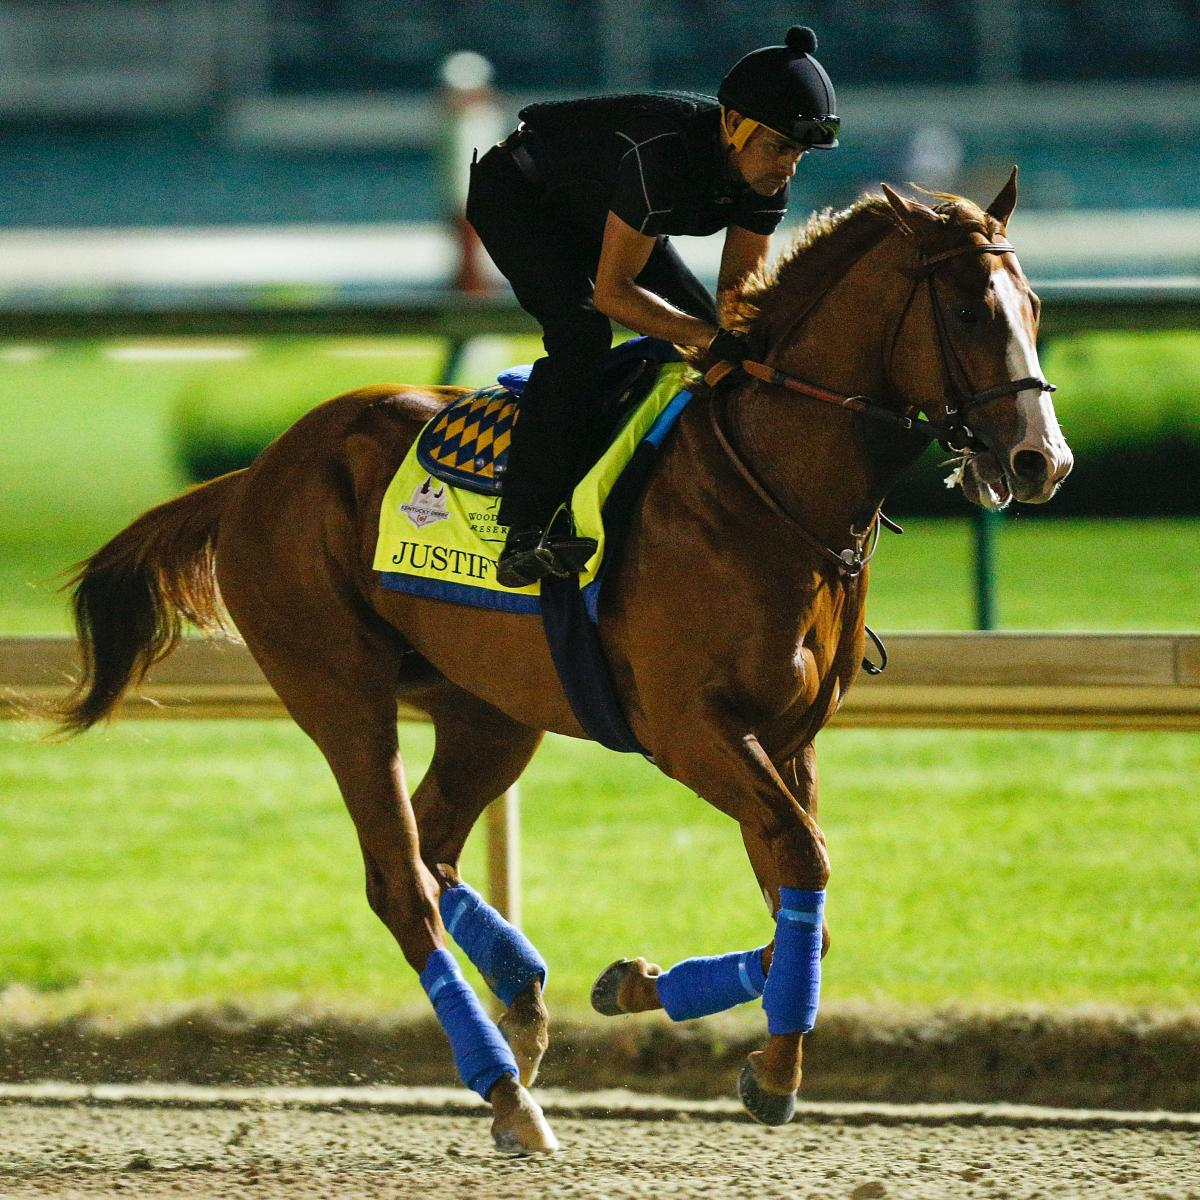 Kentucky Derby Schedule 2018 Race Start Time Tv Coverage